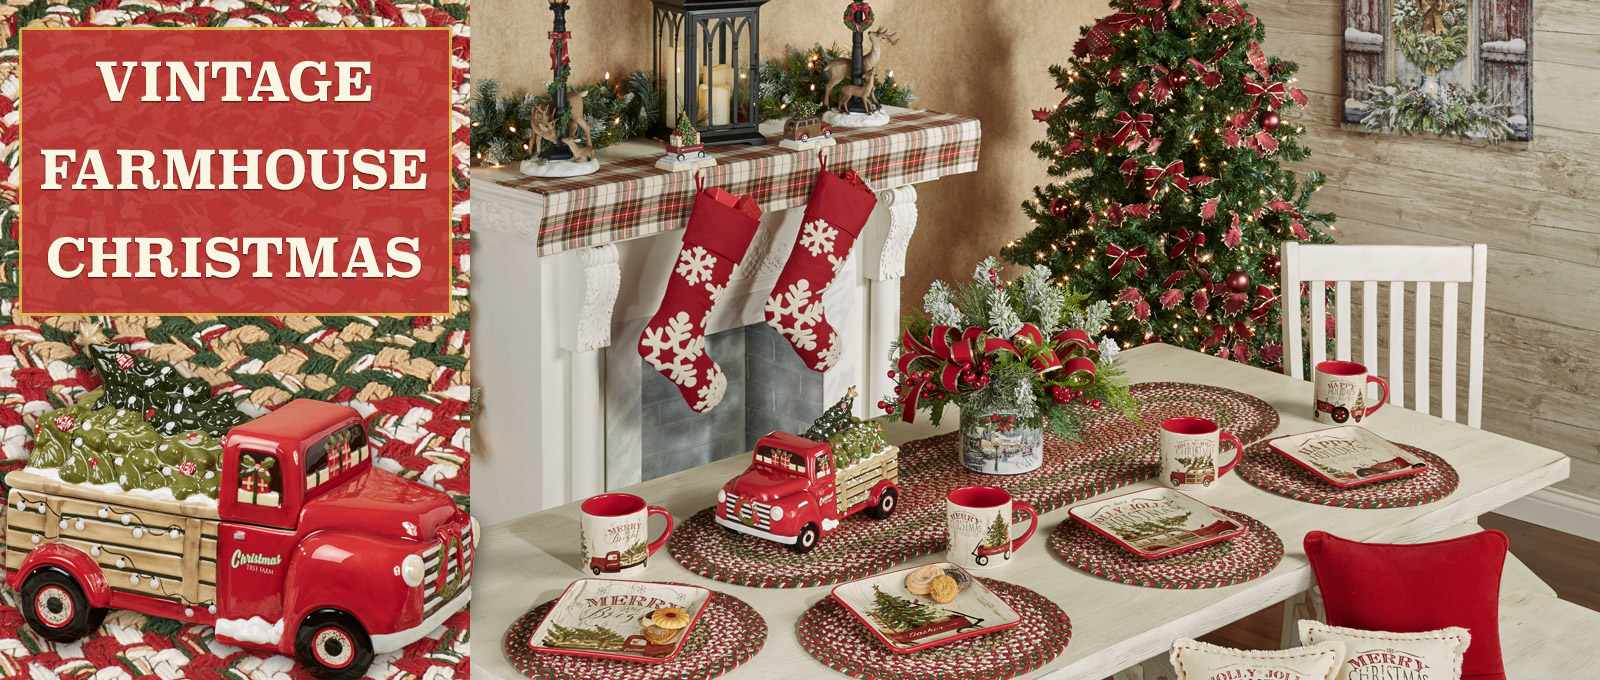 Vintage Farmhosue Christmas Dining Room